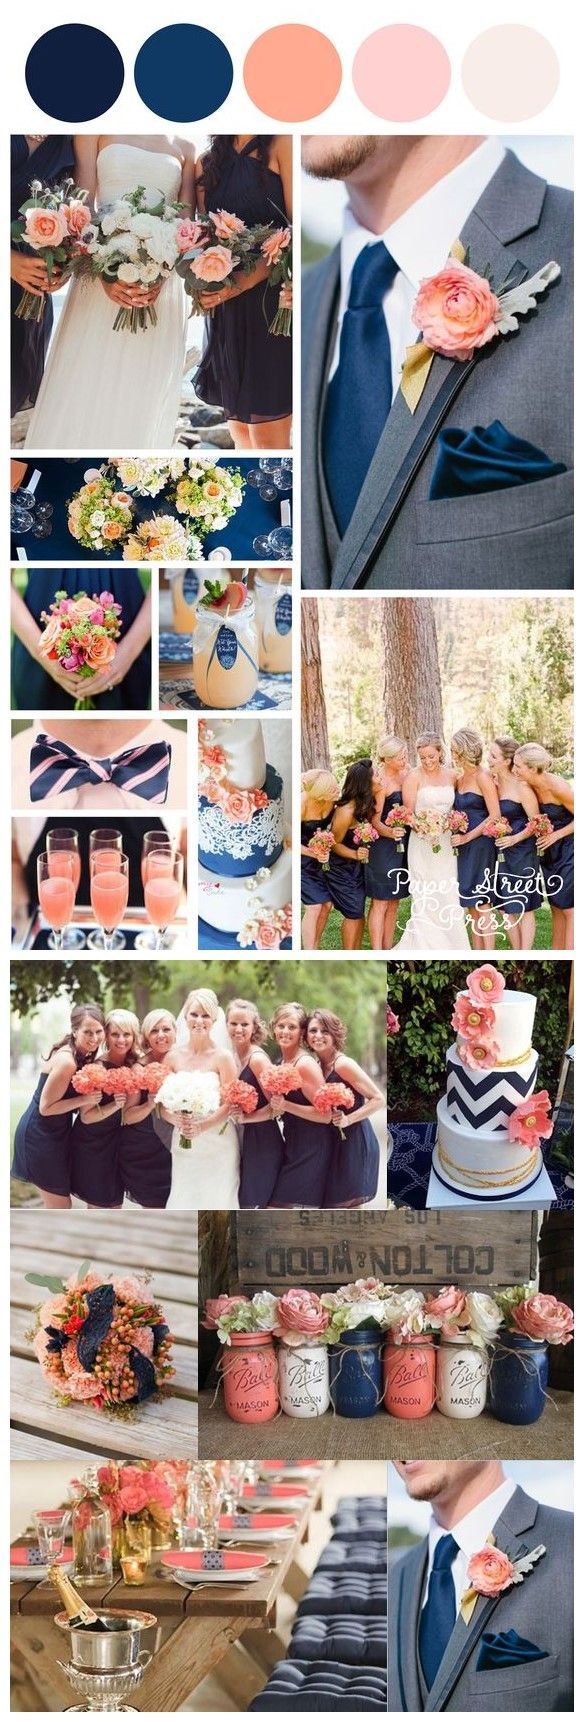 Best 25 peach wedding colors ideas on pinterest peach for Navy blue wedding theme ideas